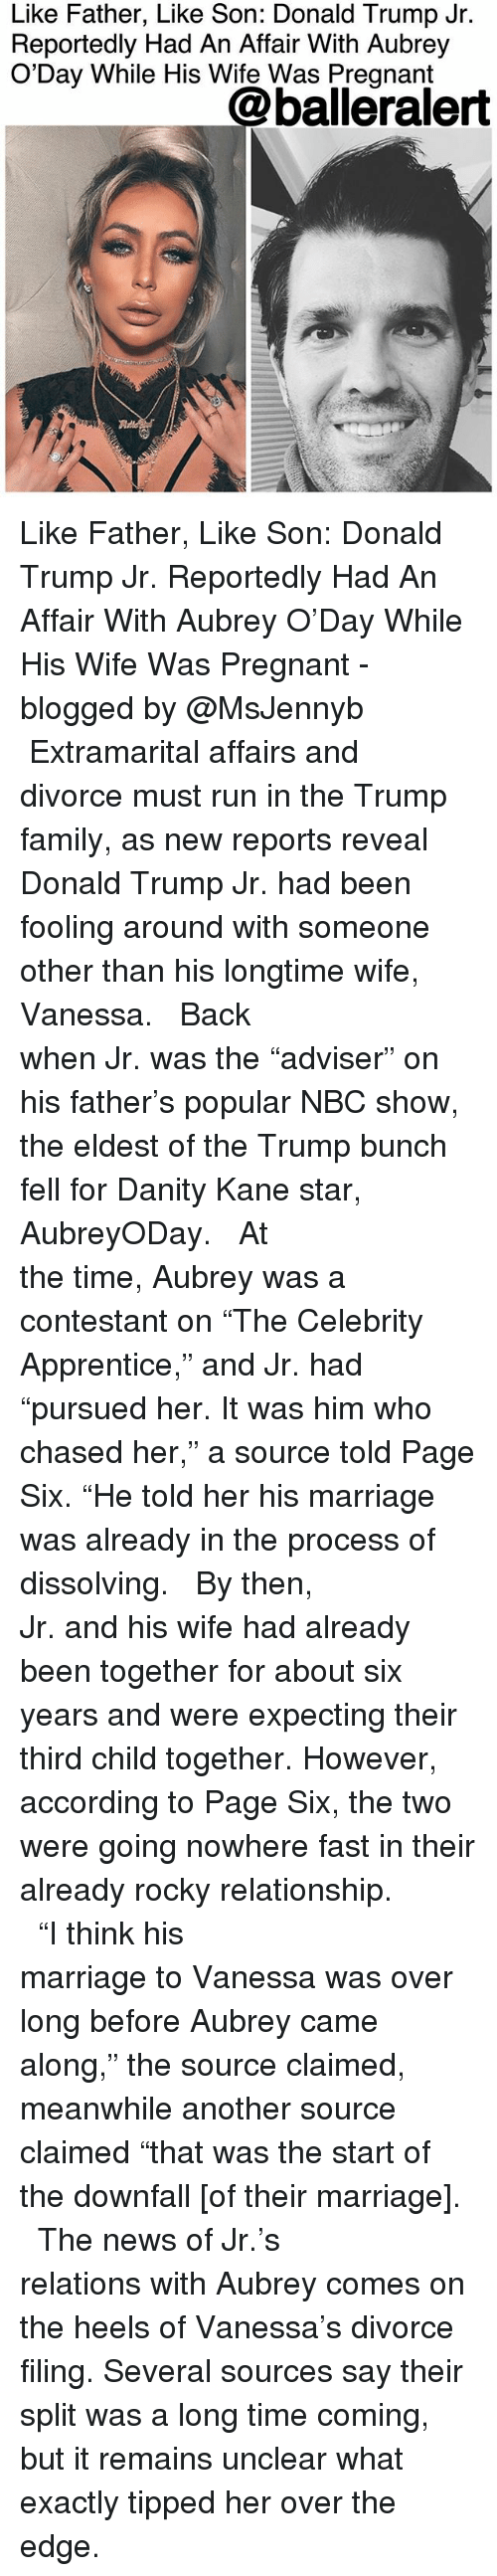 "eldest: Like Father, Like Son: Donald Trump Jr.  Reportedly Had An Affair With Aubrey  O'Day While His Wife Was Pregnant  @balleralert Like Father, Like Son: Donald Trump Jr. Reportedly Had An Affair With Aubrey O'Day While His Wife Was Pregnant - blogged by @MsJennyb ⠀⠀⠀⠀⠀⠀⠀⠀⠀ ⠀⠀⠀⠀⠀⠀⠀⠀⠀ Extramarital affairs and divorce must run in the Trump family, as new reports reveal Donald Trump Jr. had been fooling around with someone other than his longtime wife, Vanessa. ⠀⠀⠀⠀⠀⠀⠀⠀⠀ ⠀⠀⠀⠀⠀⠀⠀⠀⠀ Back when Jr. was the ""adviser"" on his father's popular NBC show, the eldest of the Trump bunch fell for Danity Kane star, AubreyODay. ⠀⠀⠀⠀⠀⠀⠀⠀⠀ ⠀⠀⠀⠀⠀⠀⠀⠀⠀ At the time, Aubrey was a contestant on ""The Celebrity Apprentice,"" and Jr. had ""pursued her. It was him who chased her,"" a source told Page Six. ""He told her his marriage was already in the process of dissolving. ⠀⠀⠀⠀⠀⠀⠀⠀⠀ ⠀⠀⠀⠀⠀⠀⠀⠀⠀ By then, Jr. and his wife had already been together for about six years and were expecting their third child together. However, according to Page Six, the two were going nowhere fast in their already rocky relationship. ⠀⠀⠀⠀⠀⠀⠀⠀⠀ ⠀⠀⠀⠀⠀⠀⠀⠀⠀ ""I think his marriage to Vanessa was over long before Aubrey came along,"" the source claimed, meanwhile another source claimed ""that was the start of the downfall [of their marriage]. ⠀⠀⠀⠀⠀⠀⠀⠀⠀ ⠀⠀⠀⠀⠀⠀⠀⠀⠀ The news of Jr.'s relations with Aubrey comes on the heels of Vanessa's divorce filing. Several sources say their split was a long time coming, but it remains unclear what exactly tipped her over the edge."